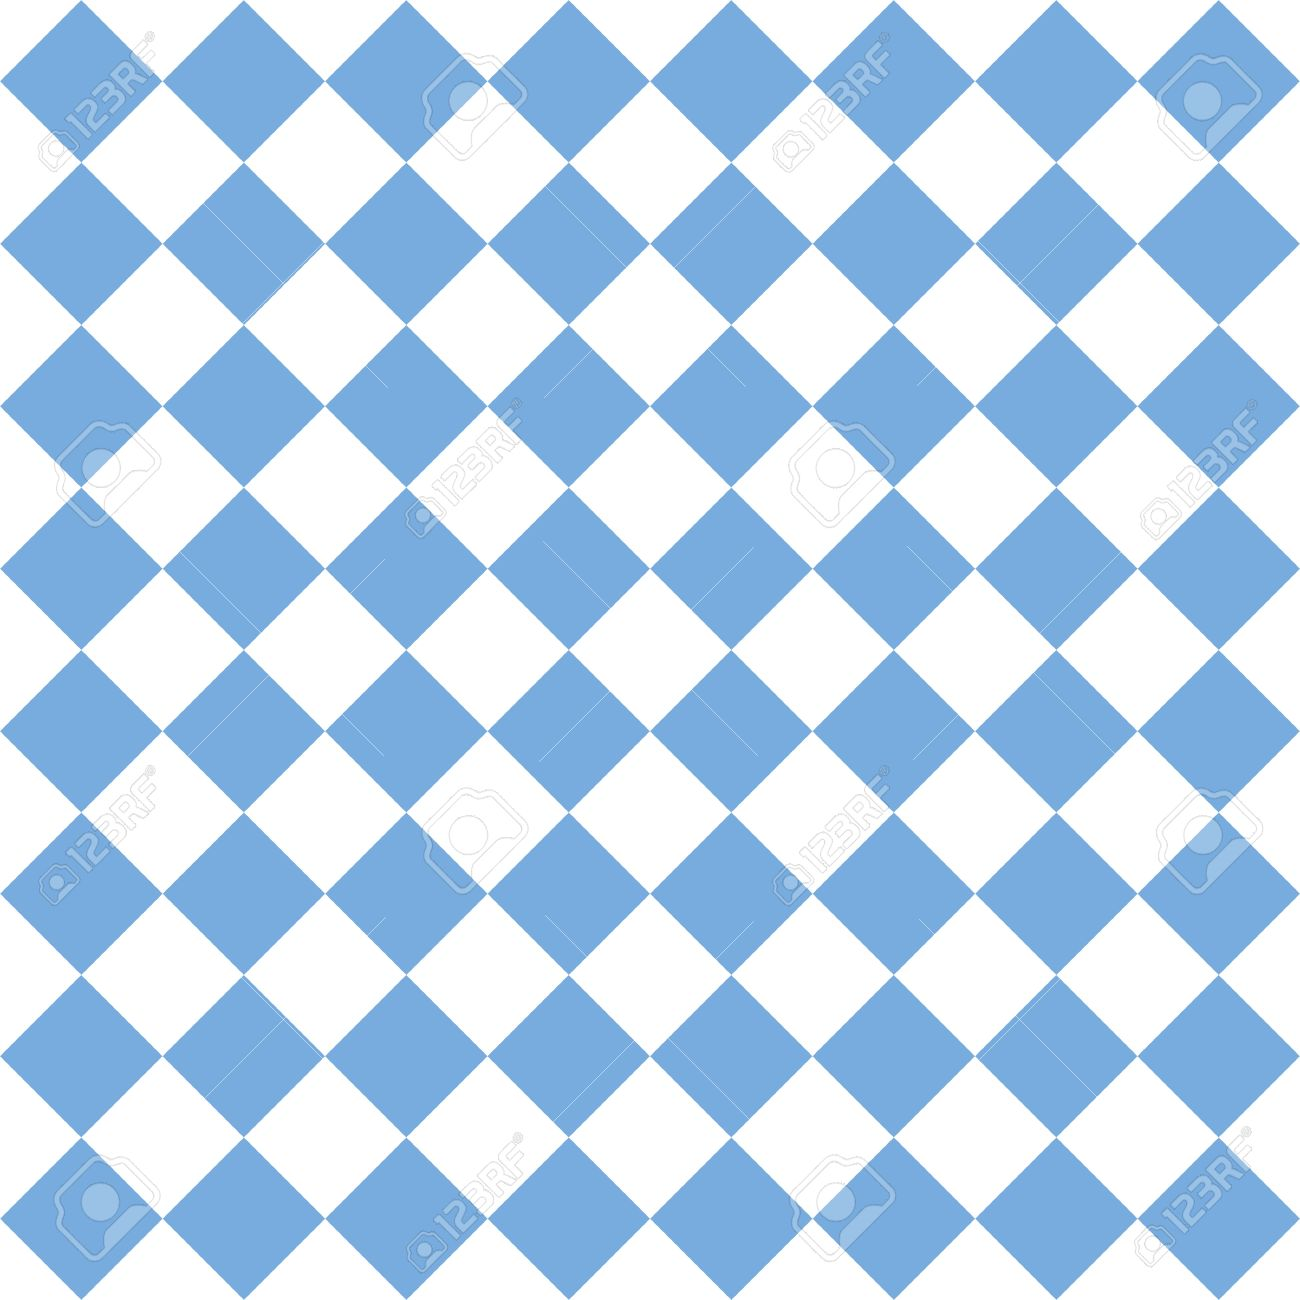 Checkered Tile Vector Pattern Or Blue And White Wallpaper Background